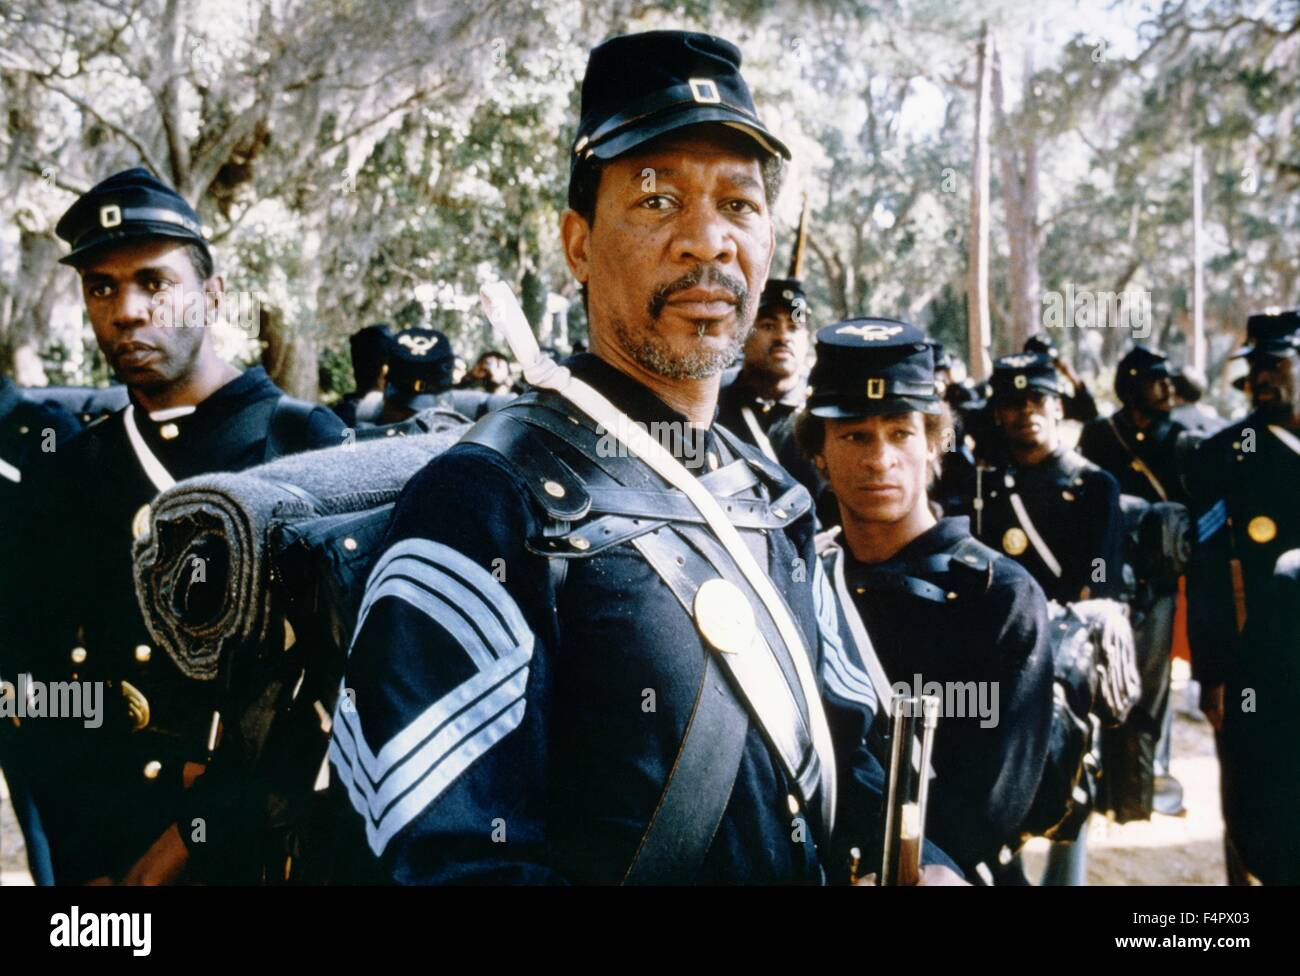 Morgan Freeman / Glory / 1989 directed by Edward Zwick [TriStar Pictures] - Stock Image